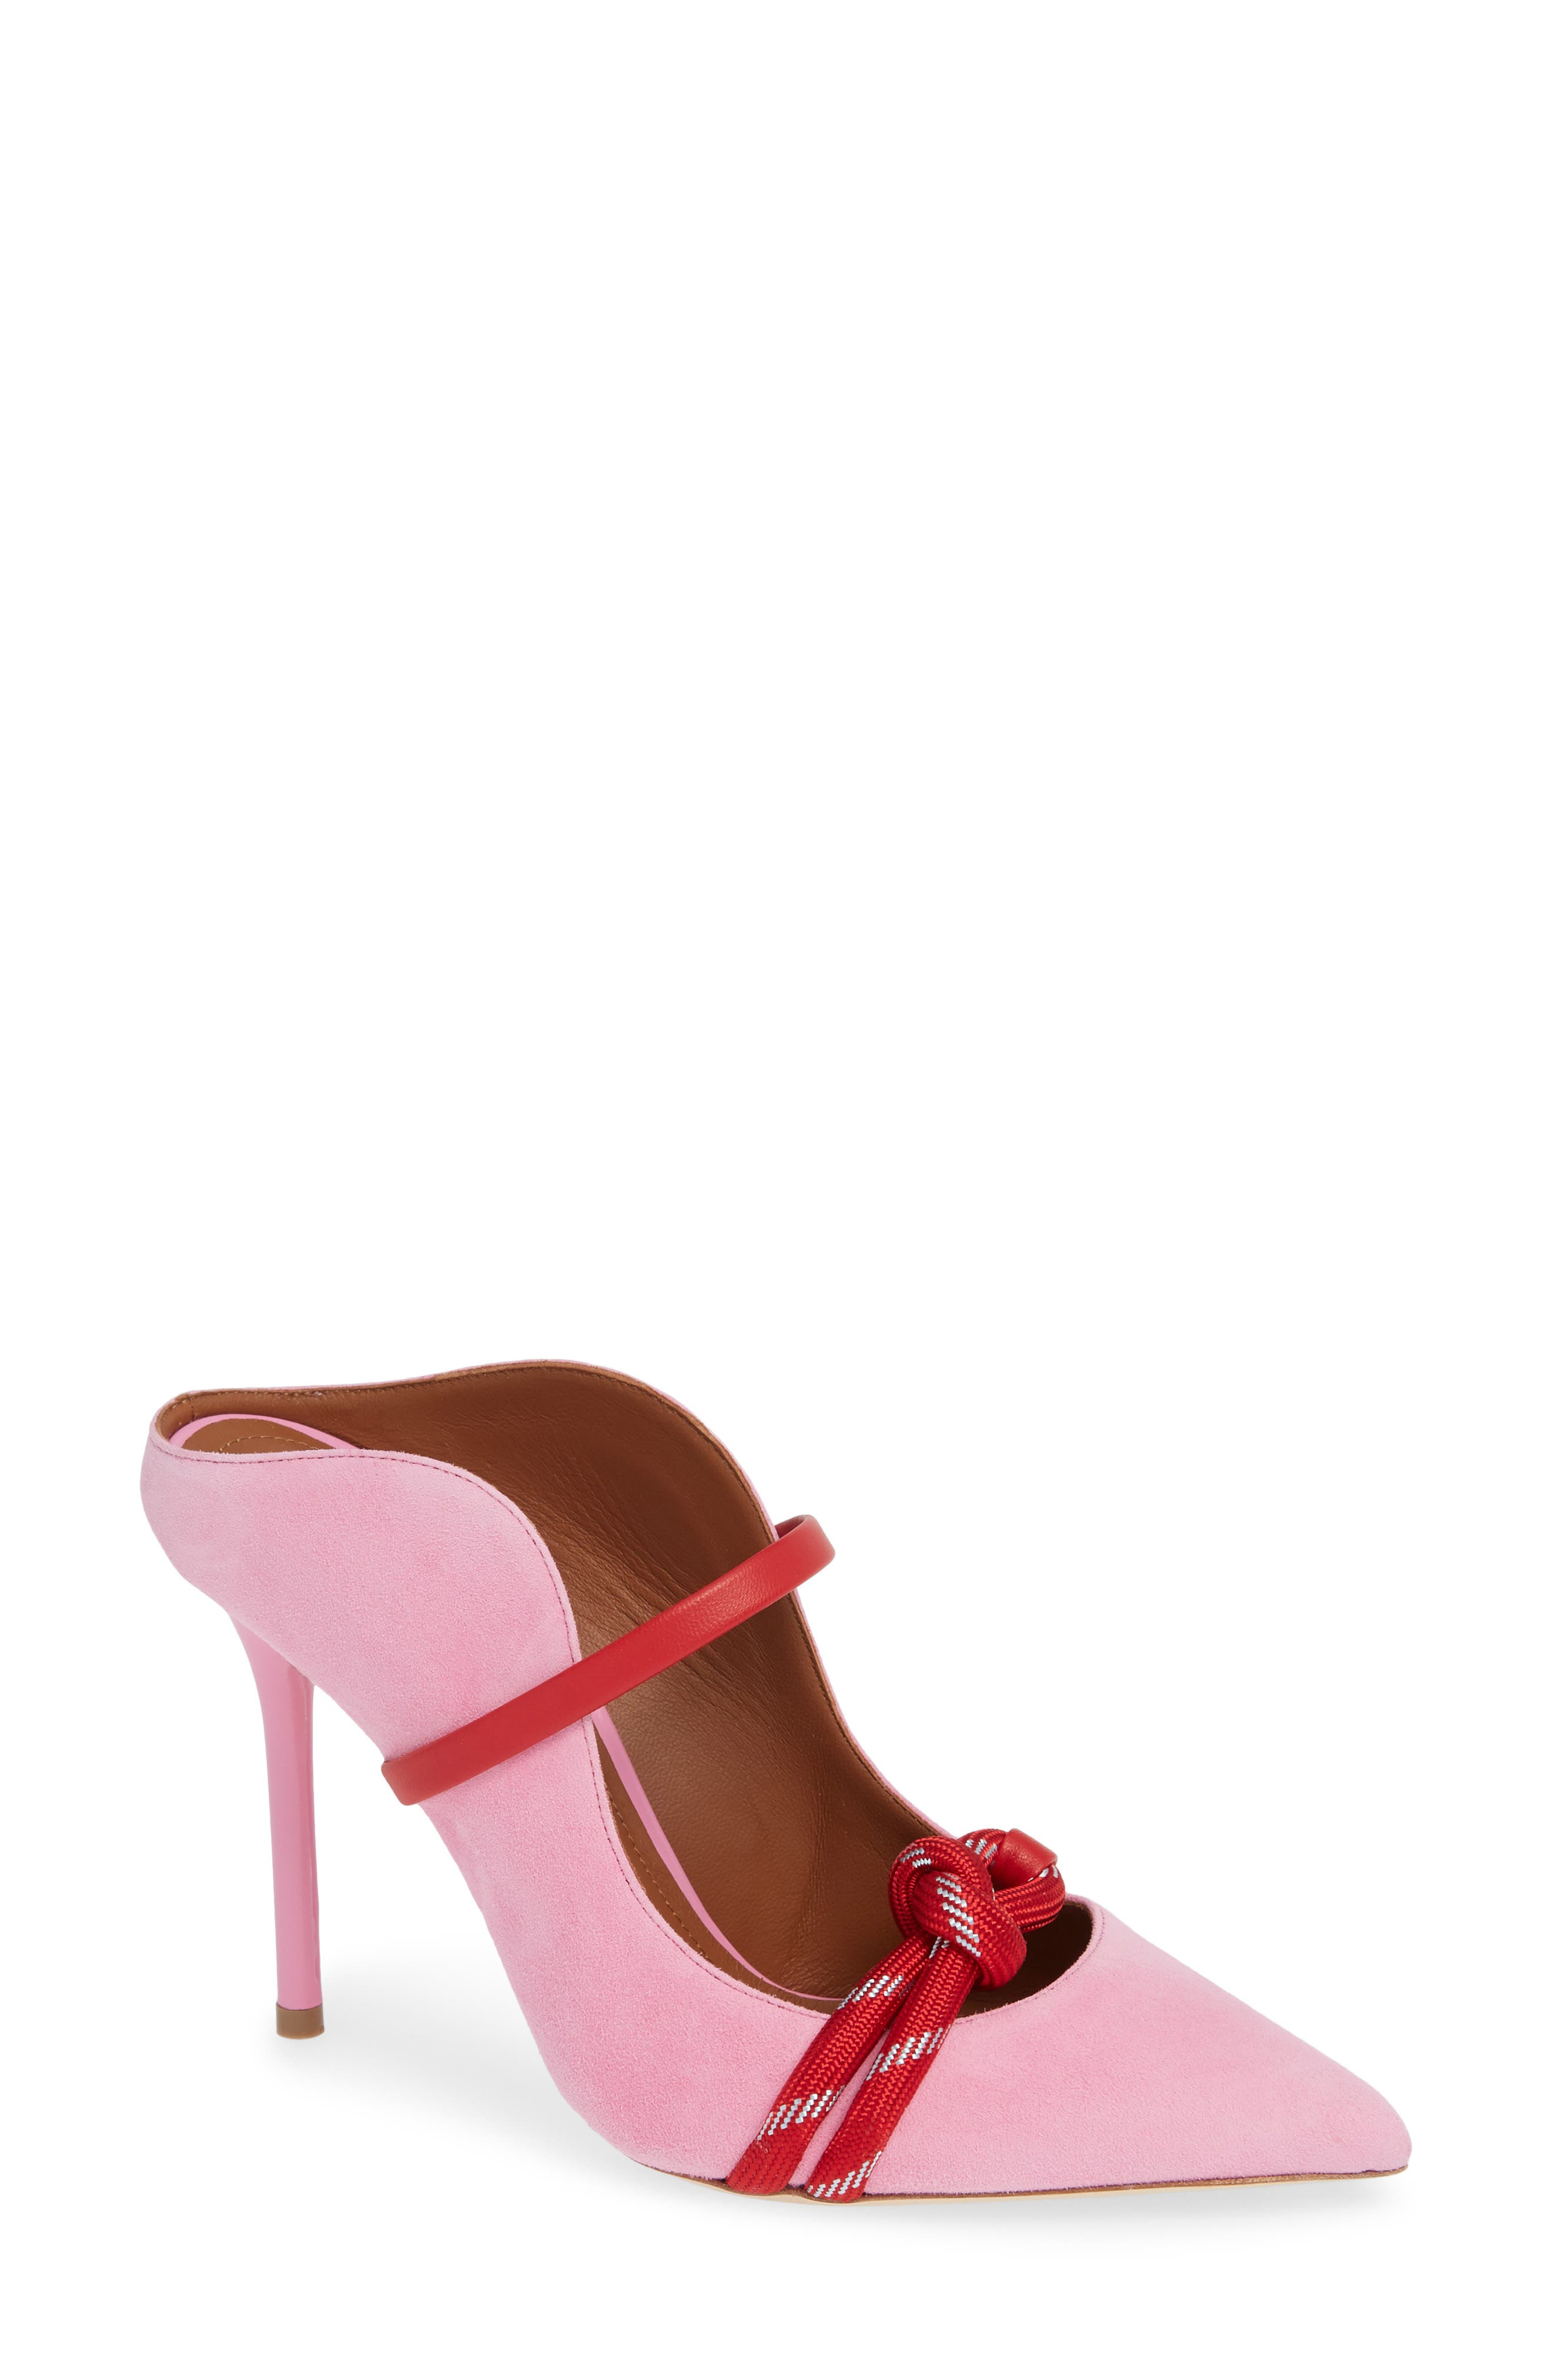 MALONE SOULIERS,                             Rope Pump,                             Main thumbnail 1, color,                             BUBBLEGUM/ RED